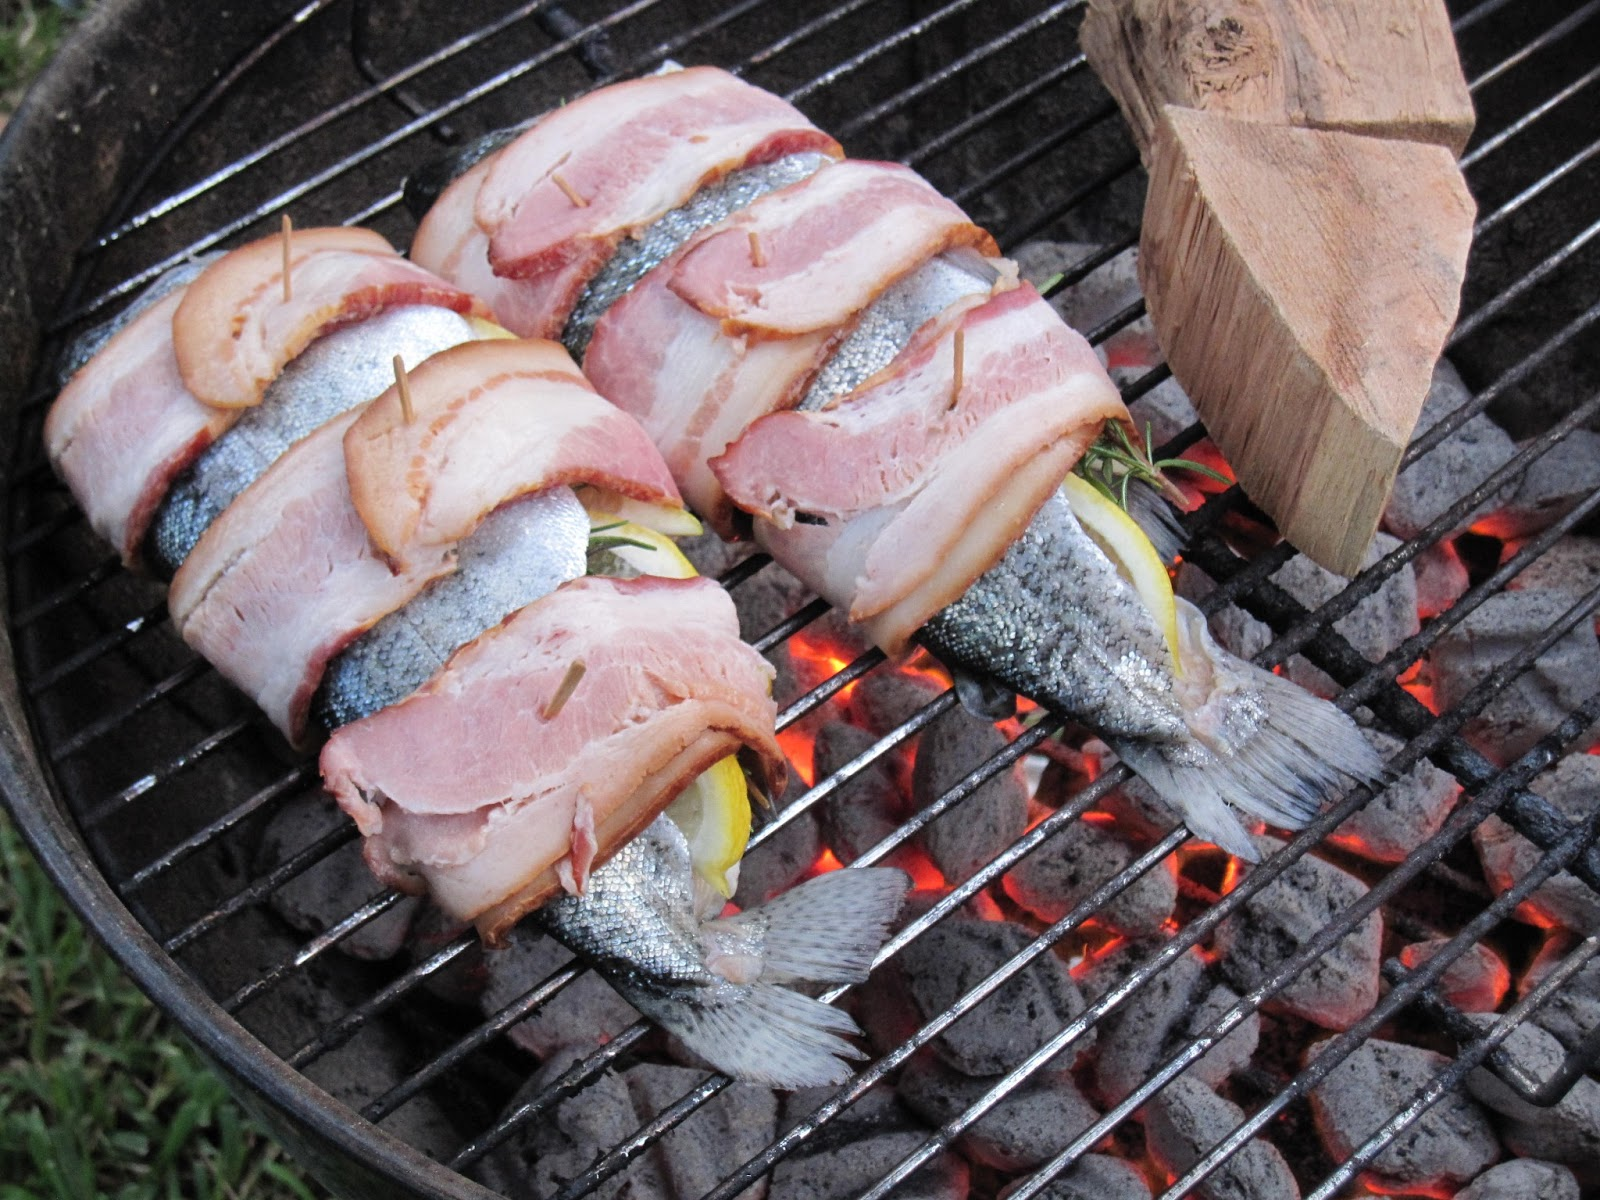 The Giggling Chef: Grilled Bacon Wrapped Herb Stuffed Rainbow Trout